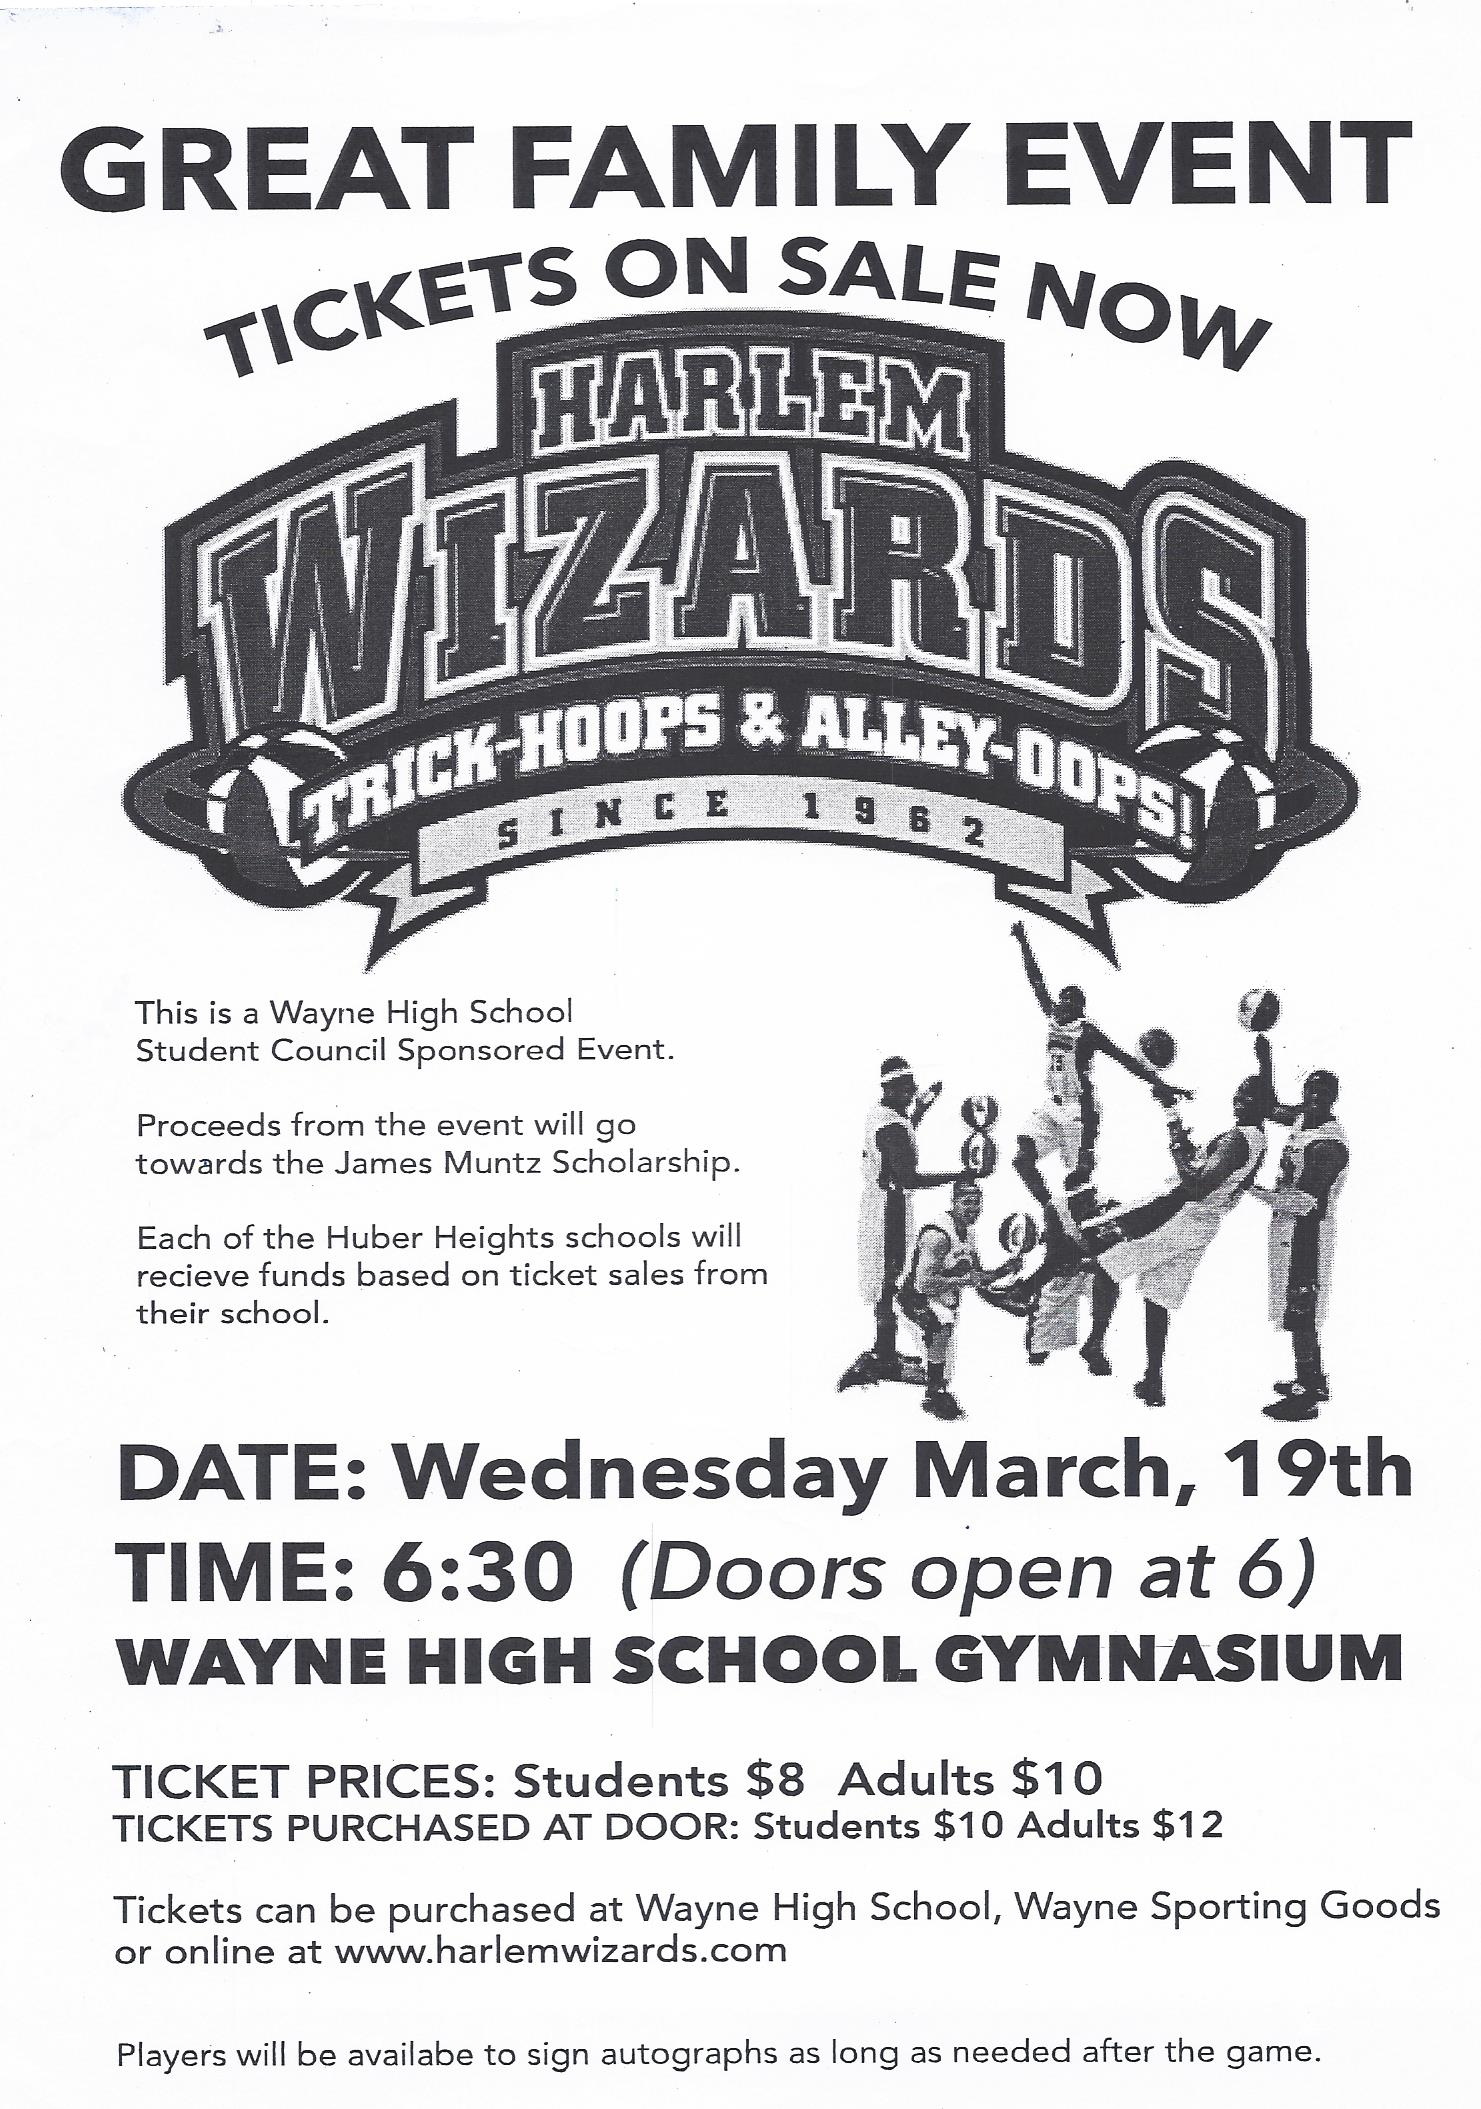 Harlem Wizzards vs Huber Heights City Schools